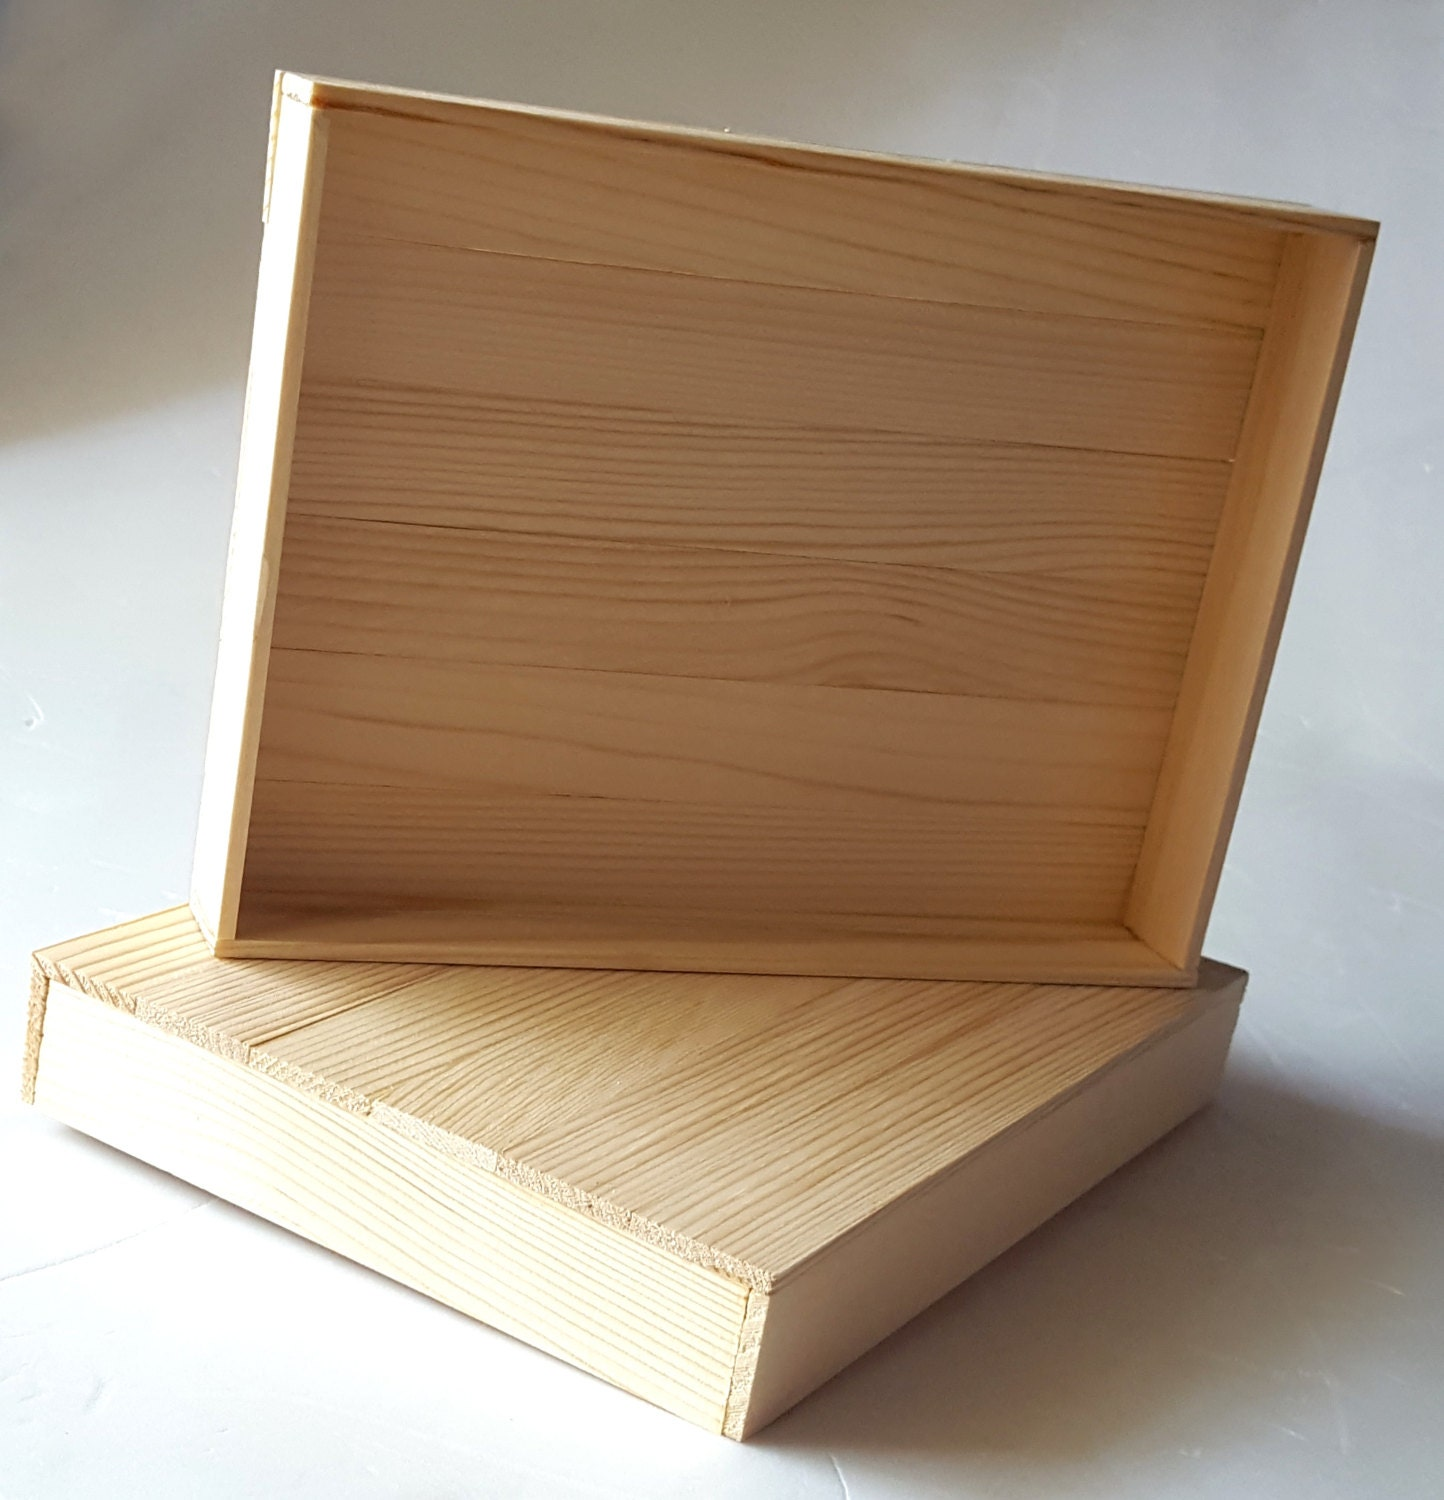 Unfinished wood craft boxes -  6 50